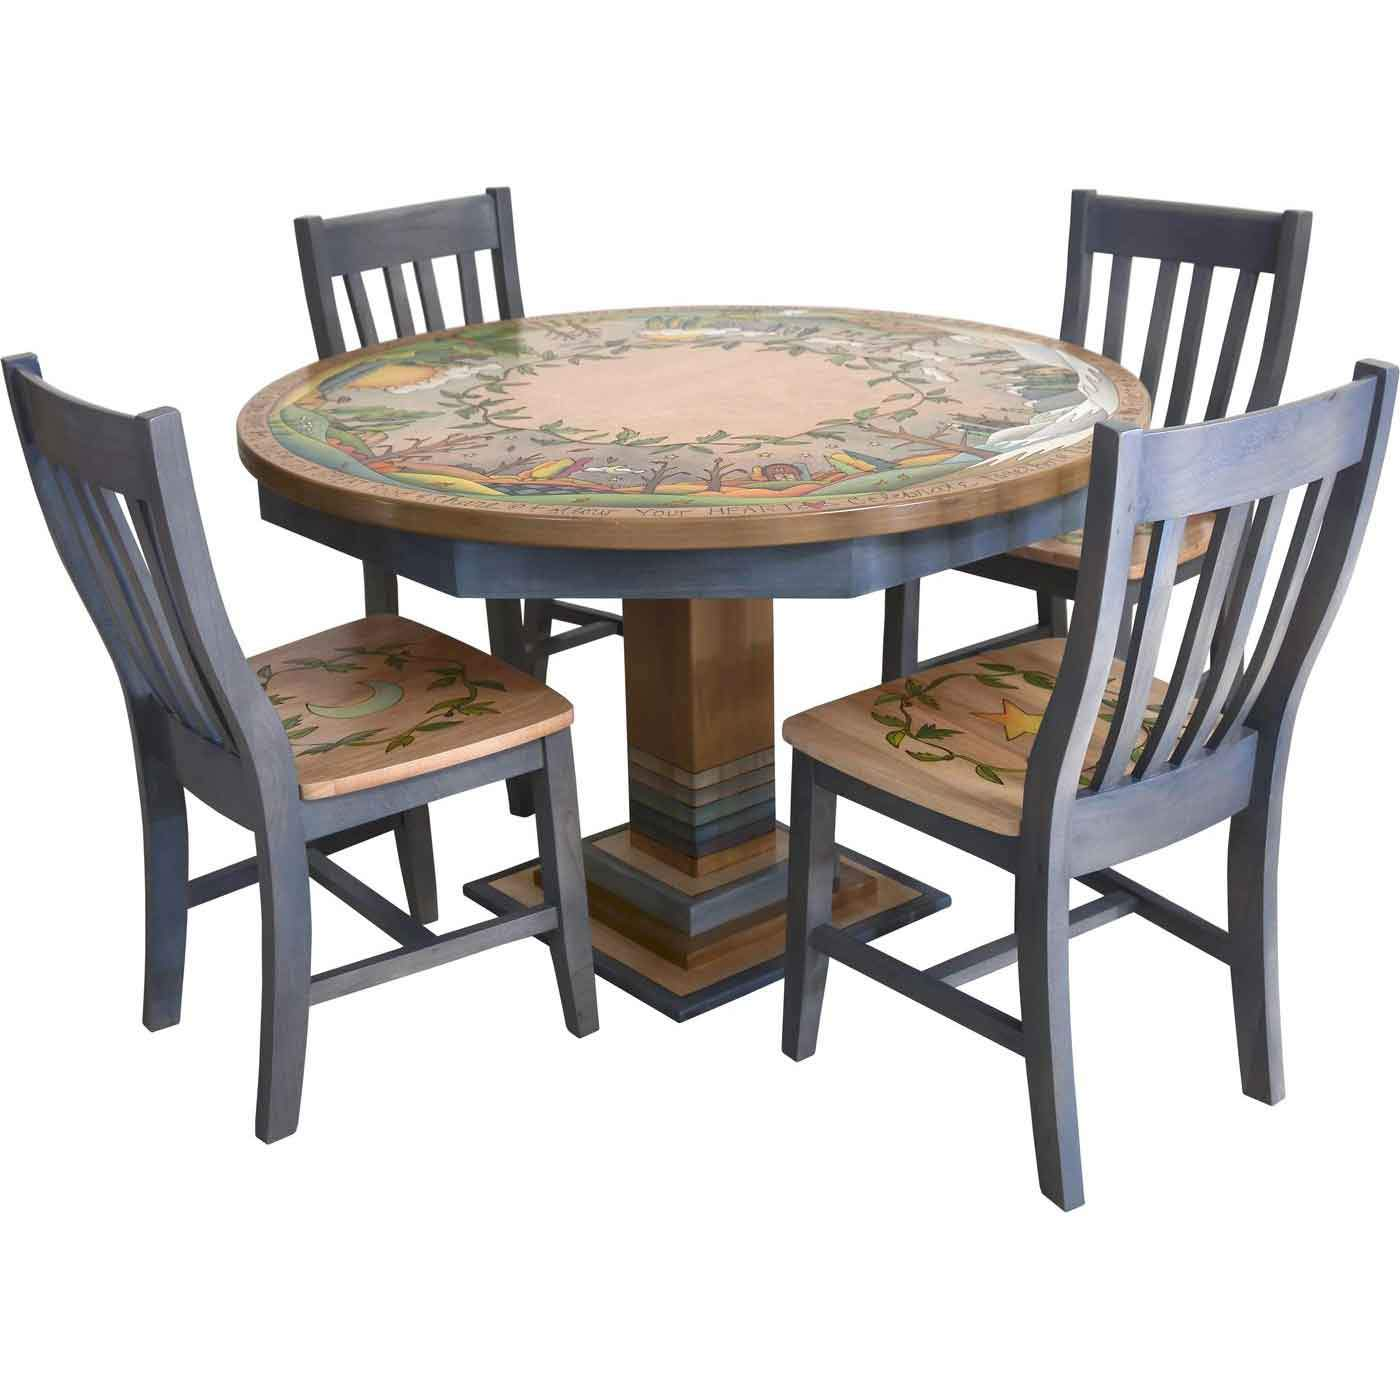 Sticks Round Dining Table With Pops Chairs Din032 Din034 Din036 Chr800 Din038 12975 Artistic Artisan Designer Dining Tables Sweetheart Gallery Contemporary Craft Gallery Fine American Craft Art Design Handmade Home